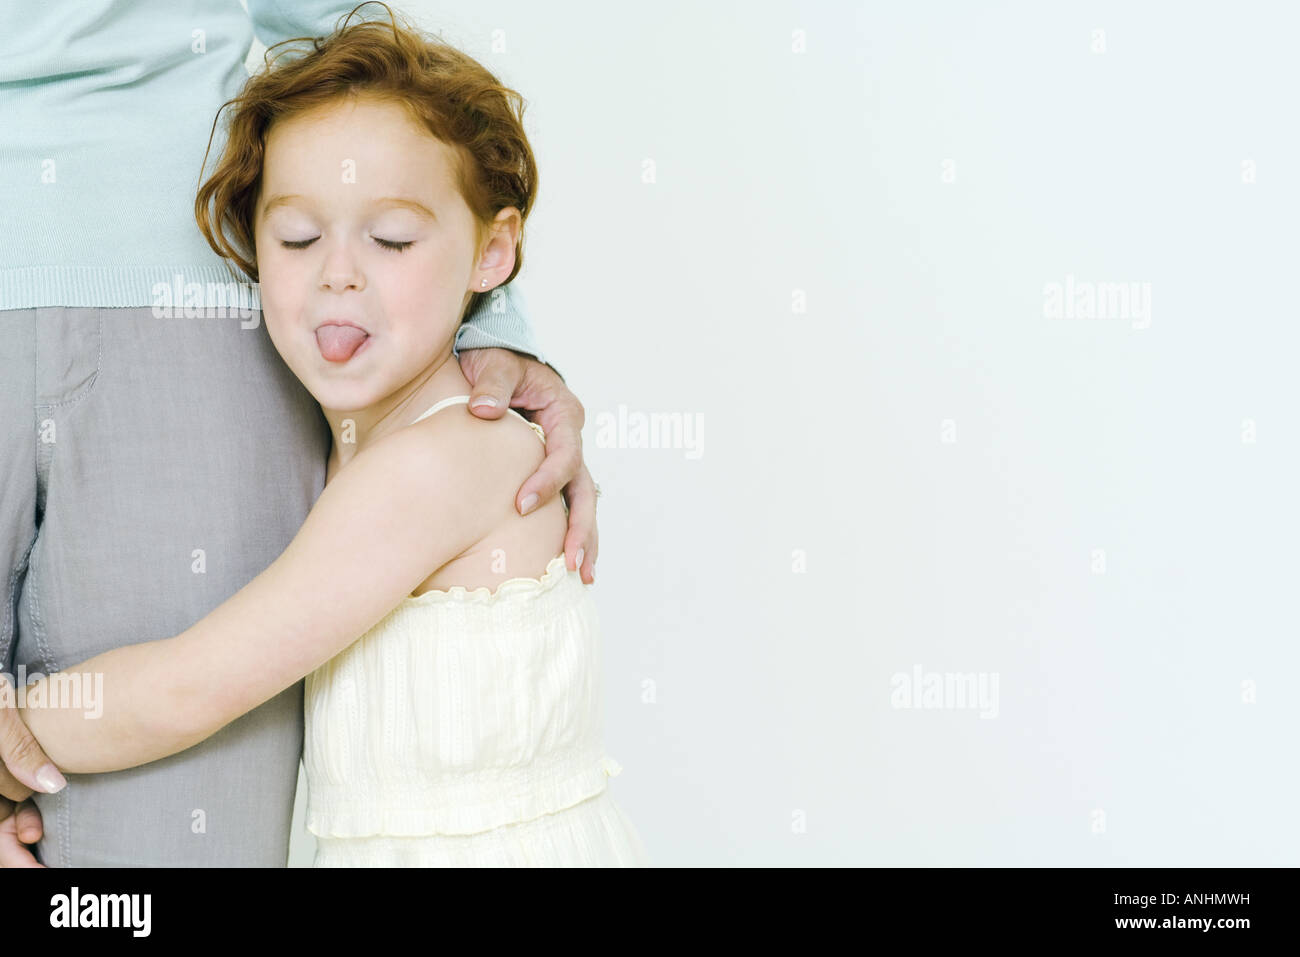 Little girl holding on to mother's leg, sticking tongue out at camera - Stock Image